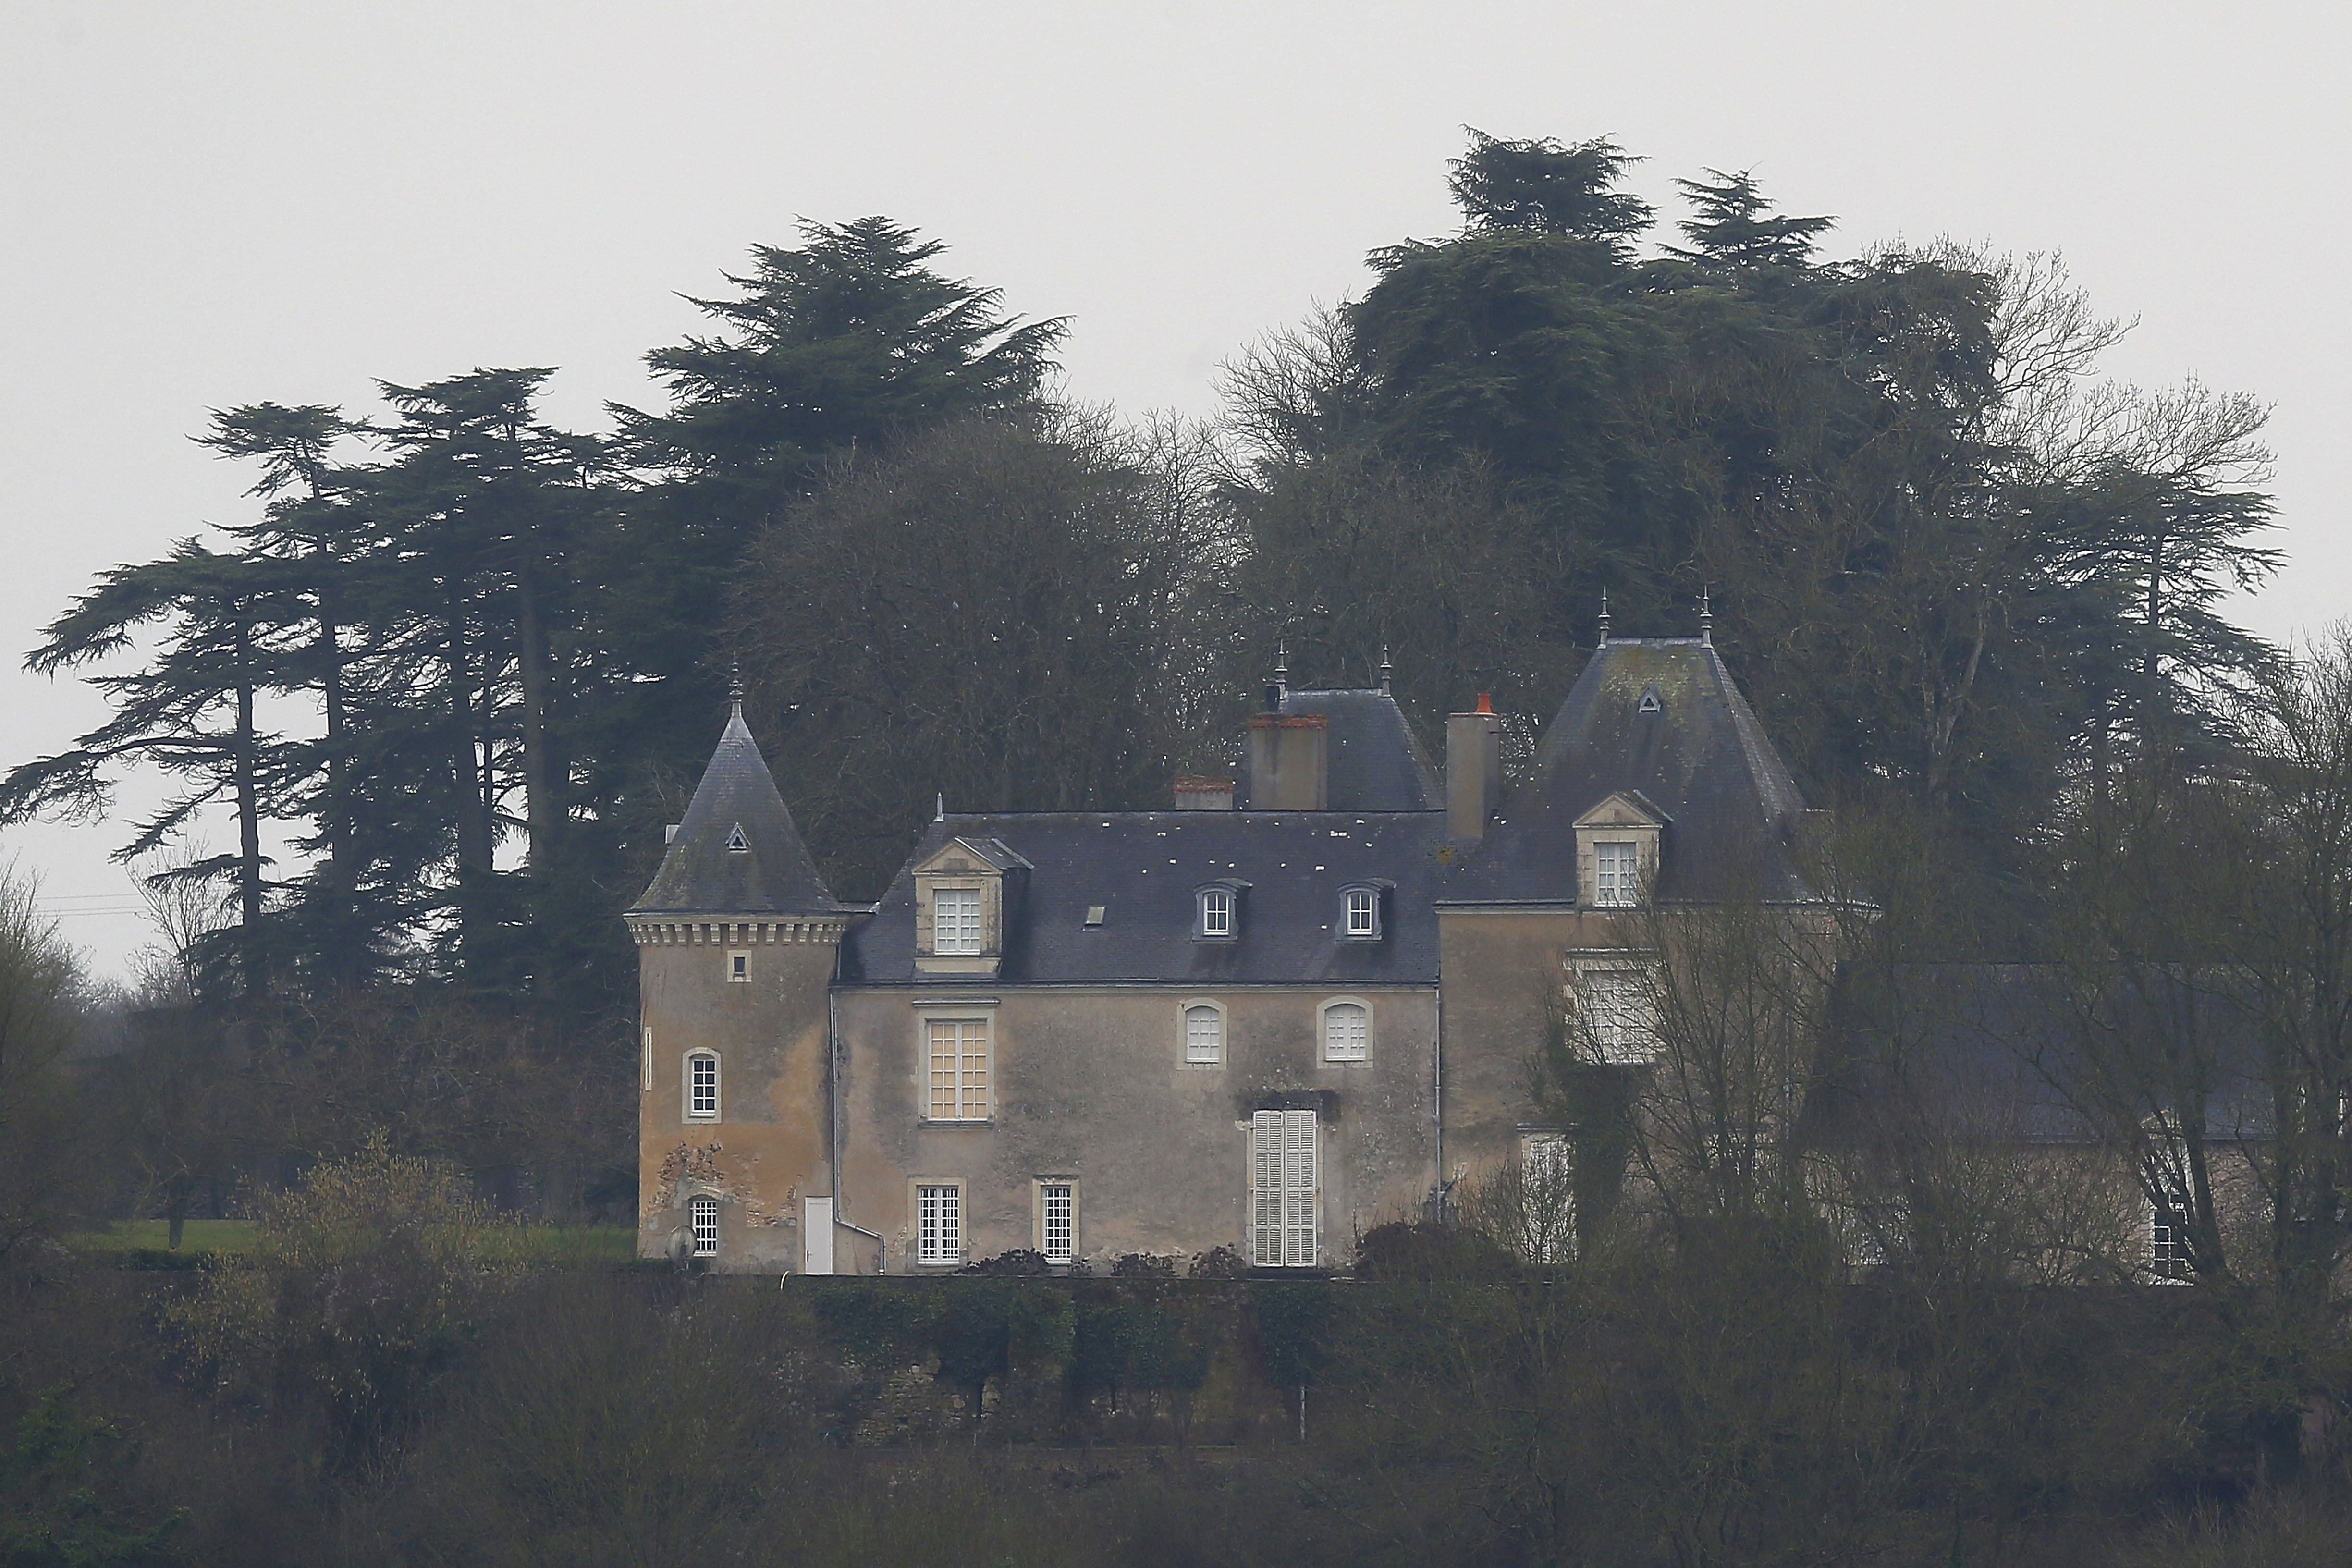 The Manoir de Beauce, or Beauce manor, the family home of conservative presidential candidate Francois Fillon is pictured near Solesmes, western France on Feb. 2, 2017. (AP Photo/David Vincent)